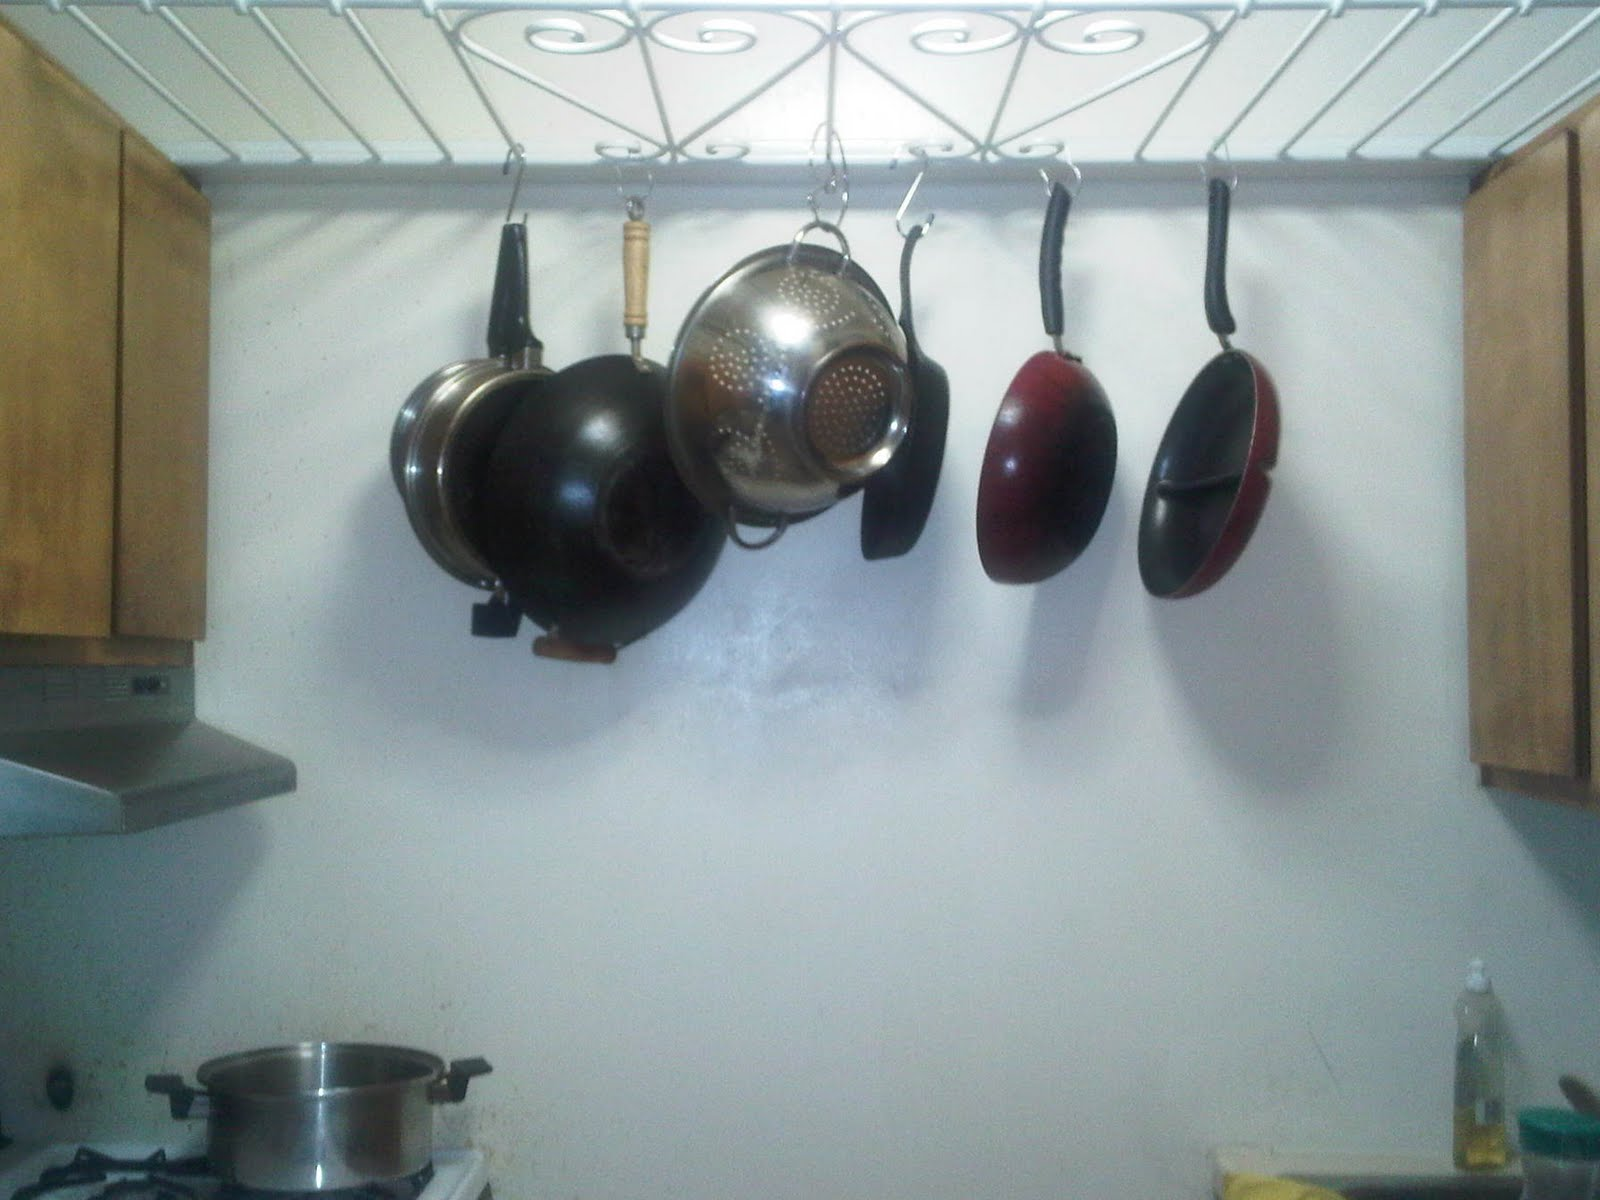 Ikea Pot Hanger The Quotbed Above Your Head Quot Pot Rack